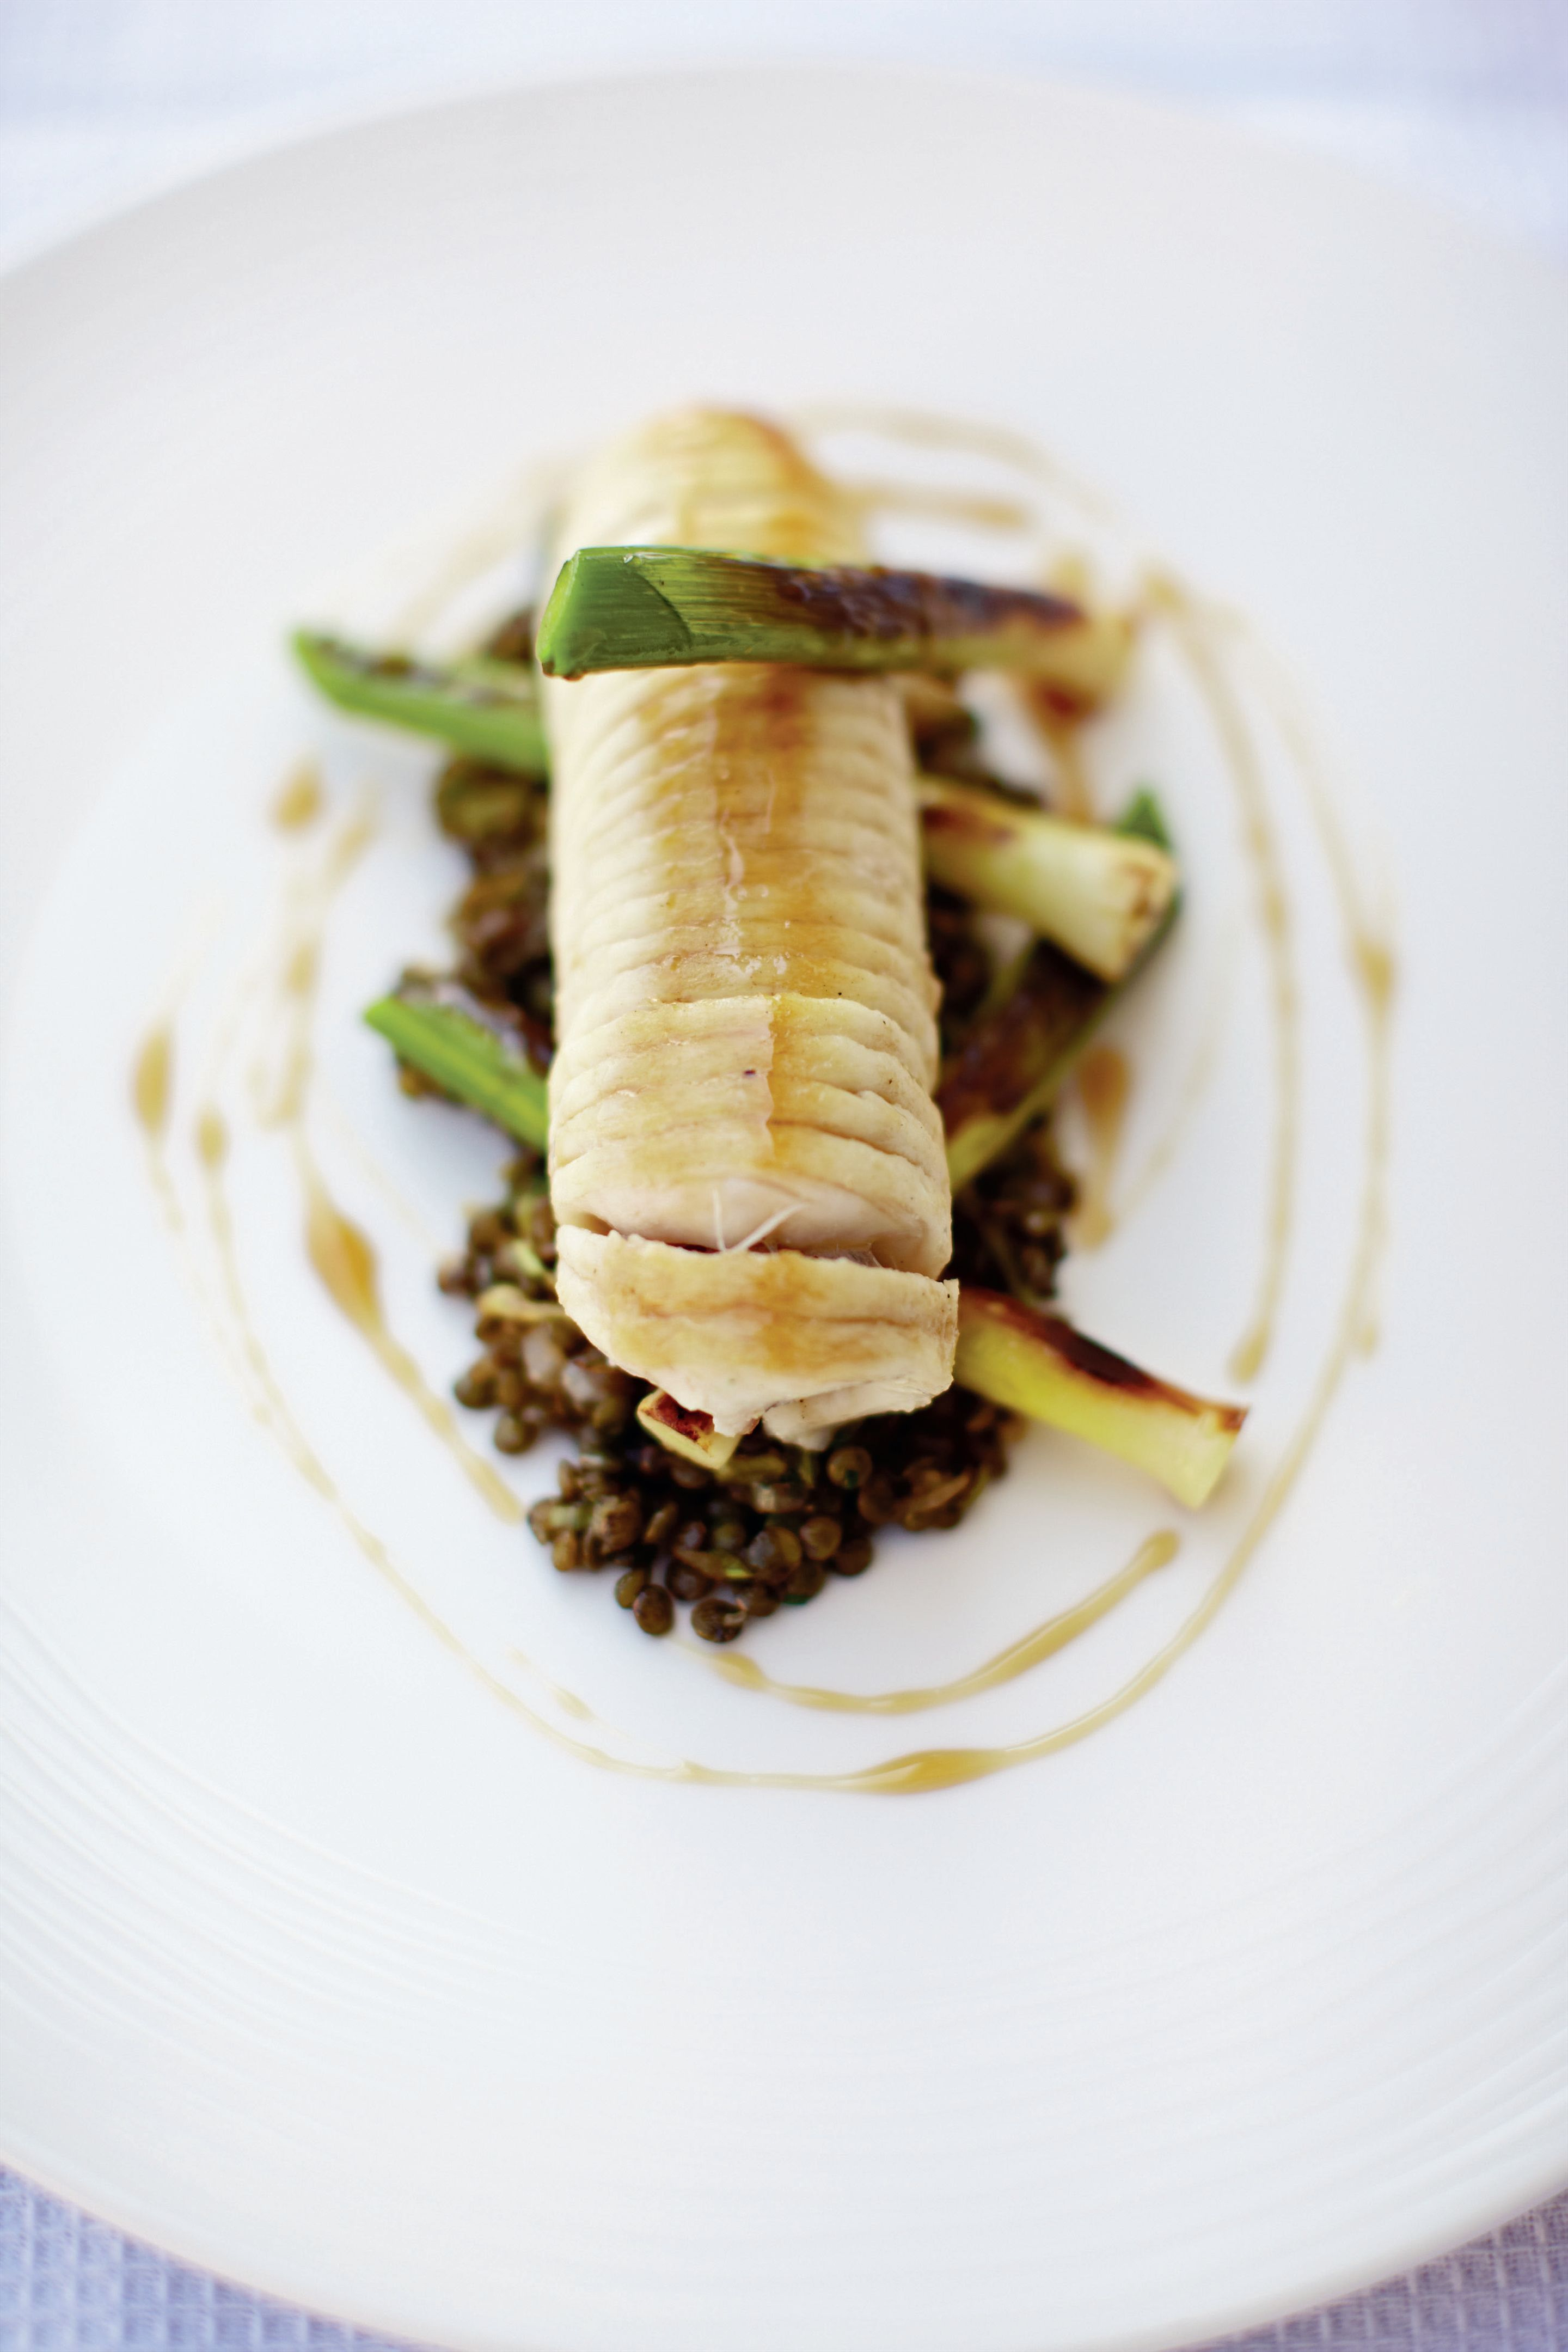 Poached ray with leeks, lentils and sherry vinegar